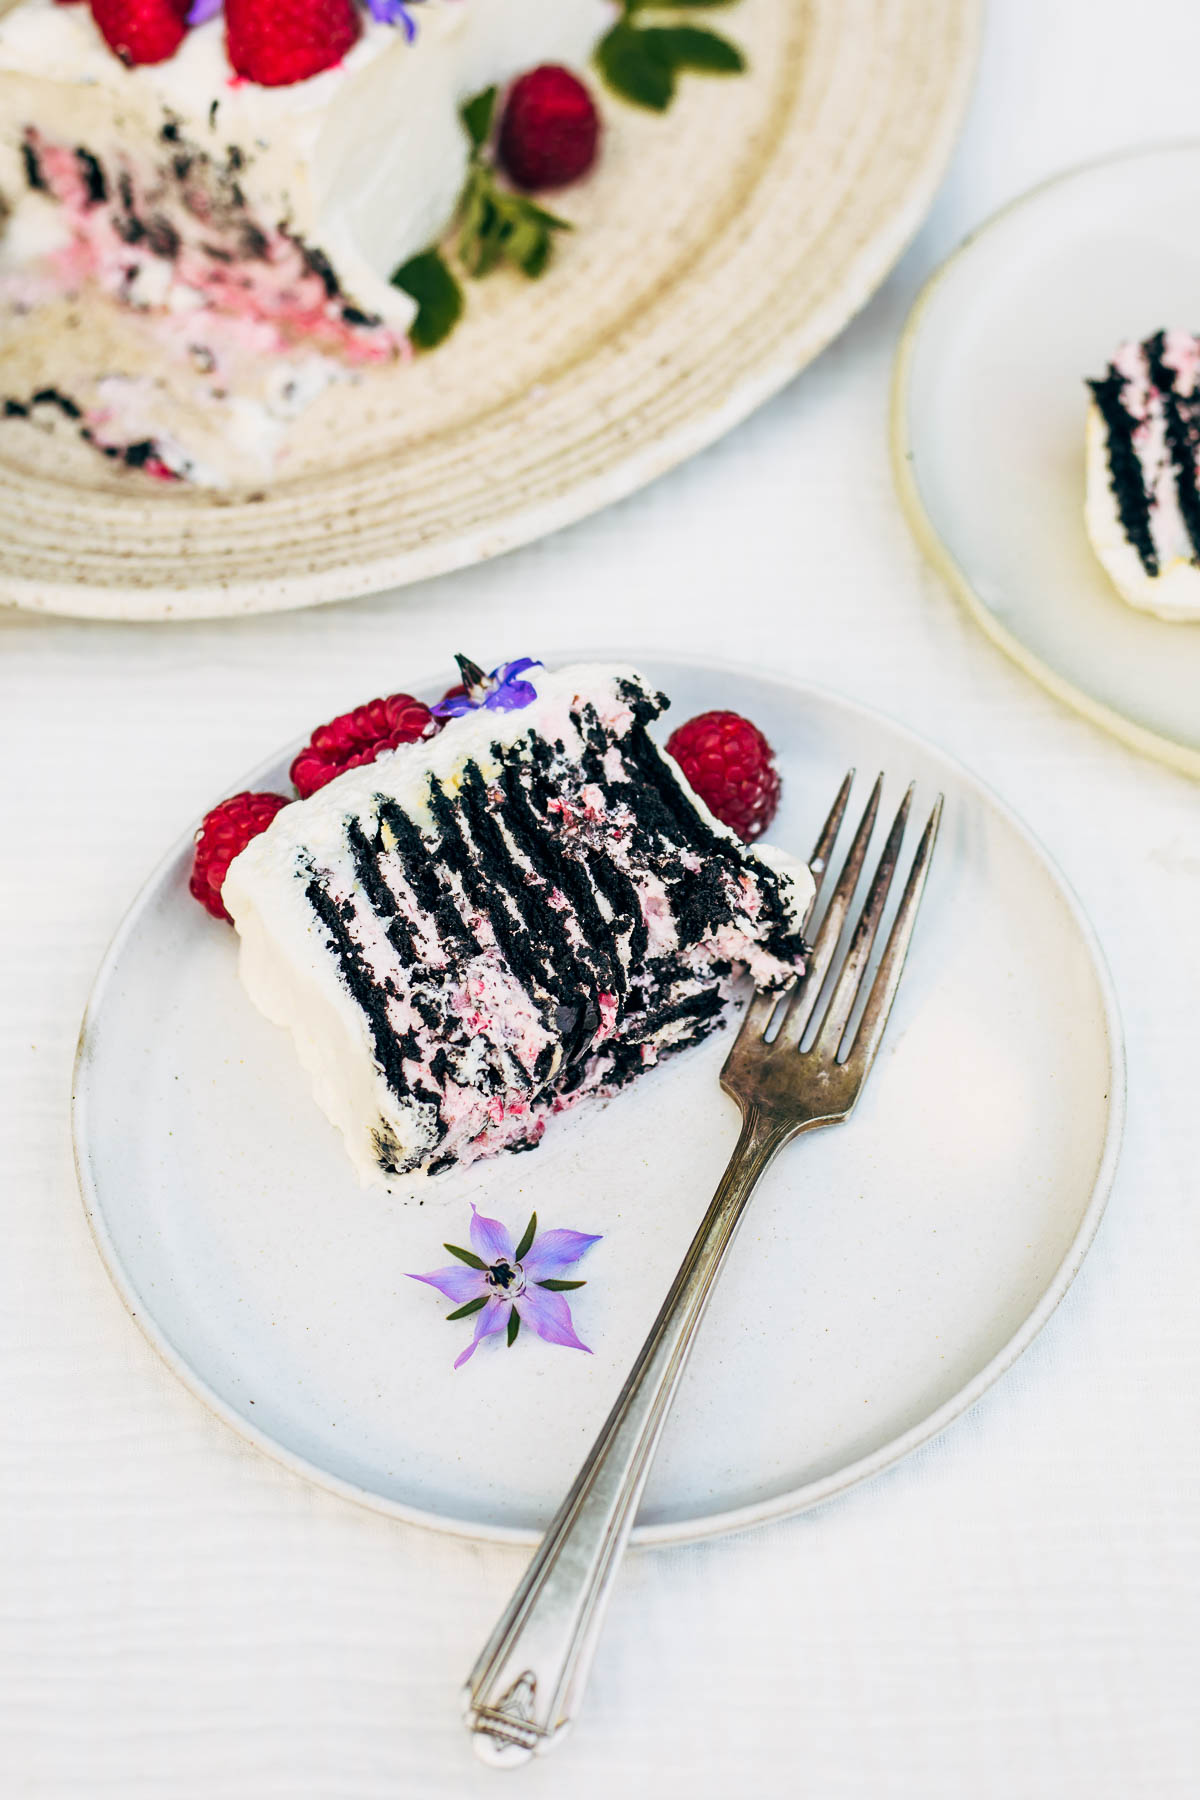 Slices of icebox cake with raspberries on plates.